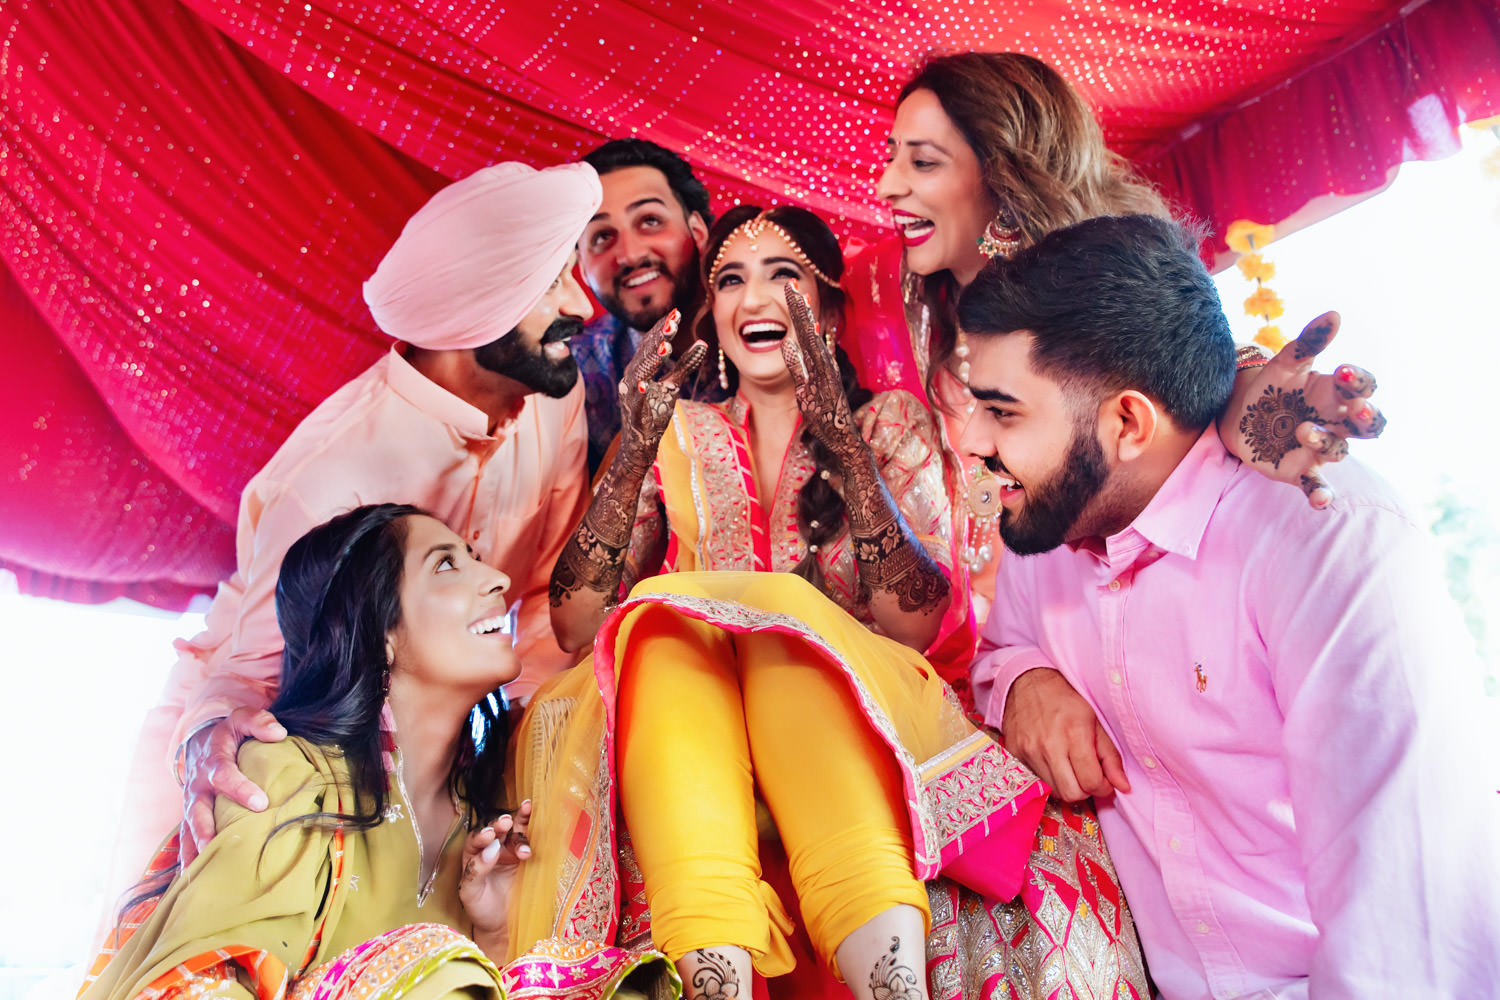 Punjabi Wedding Ripon